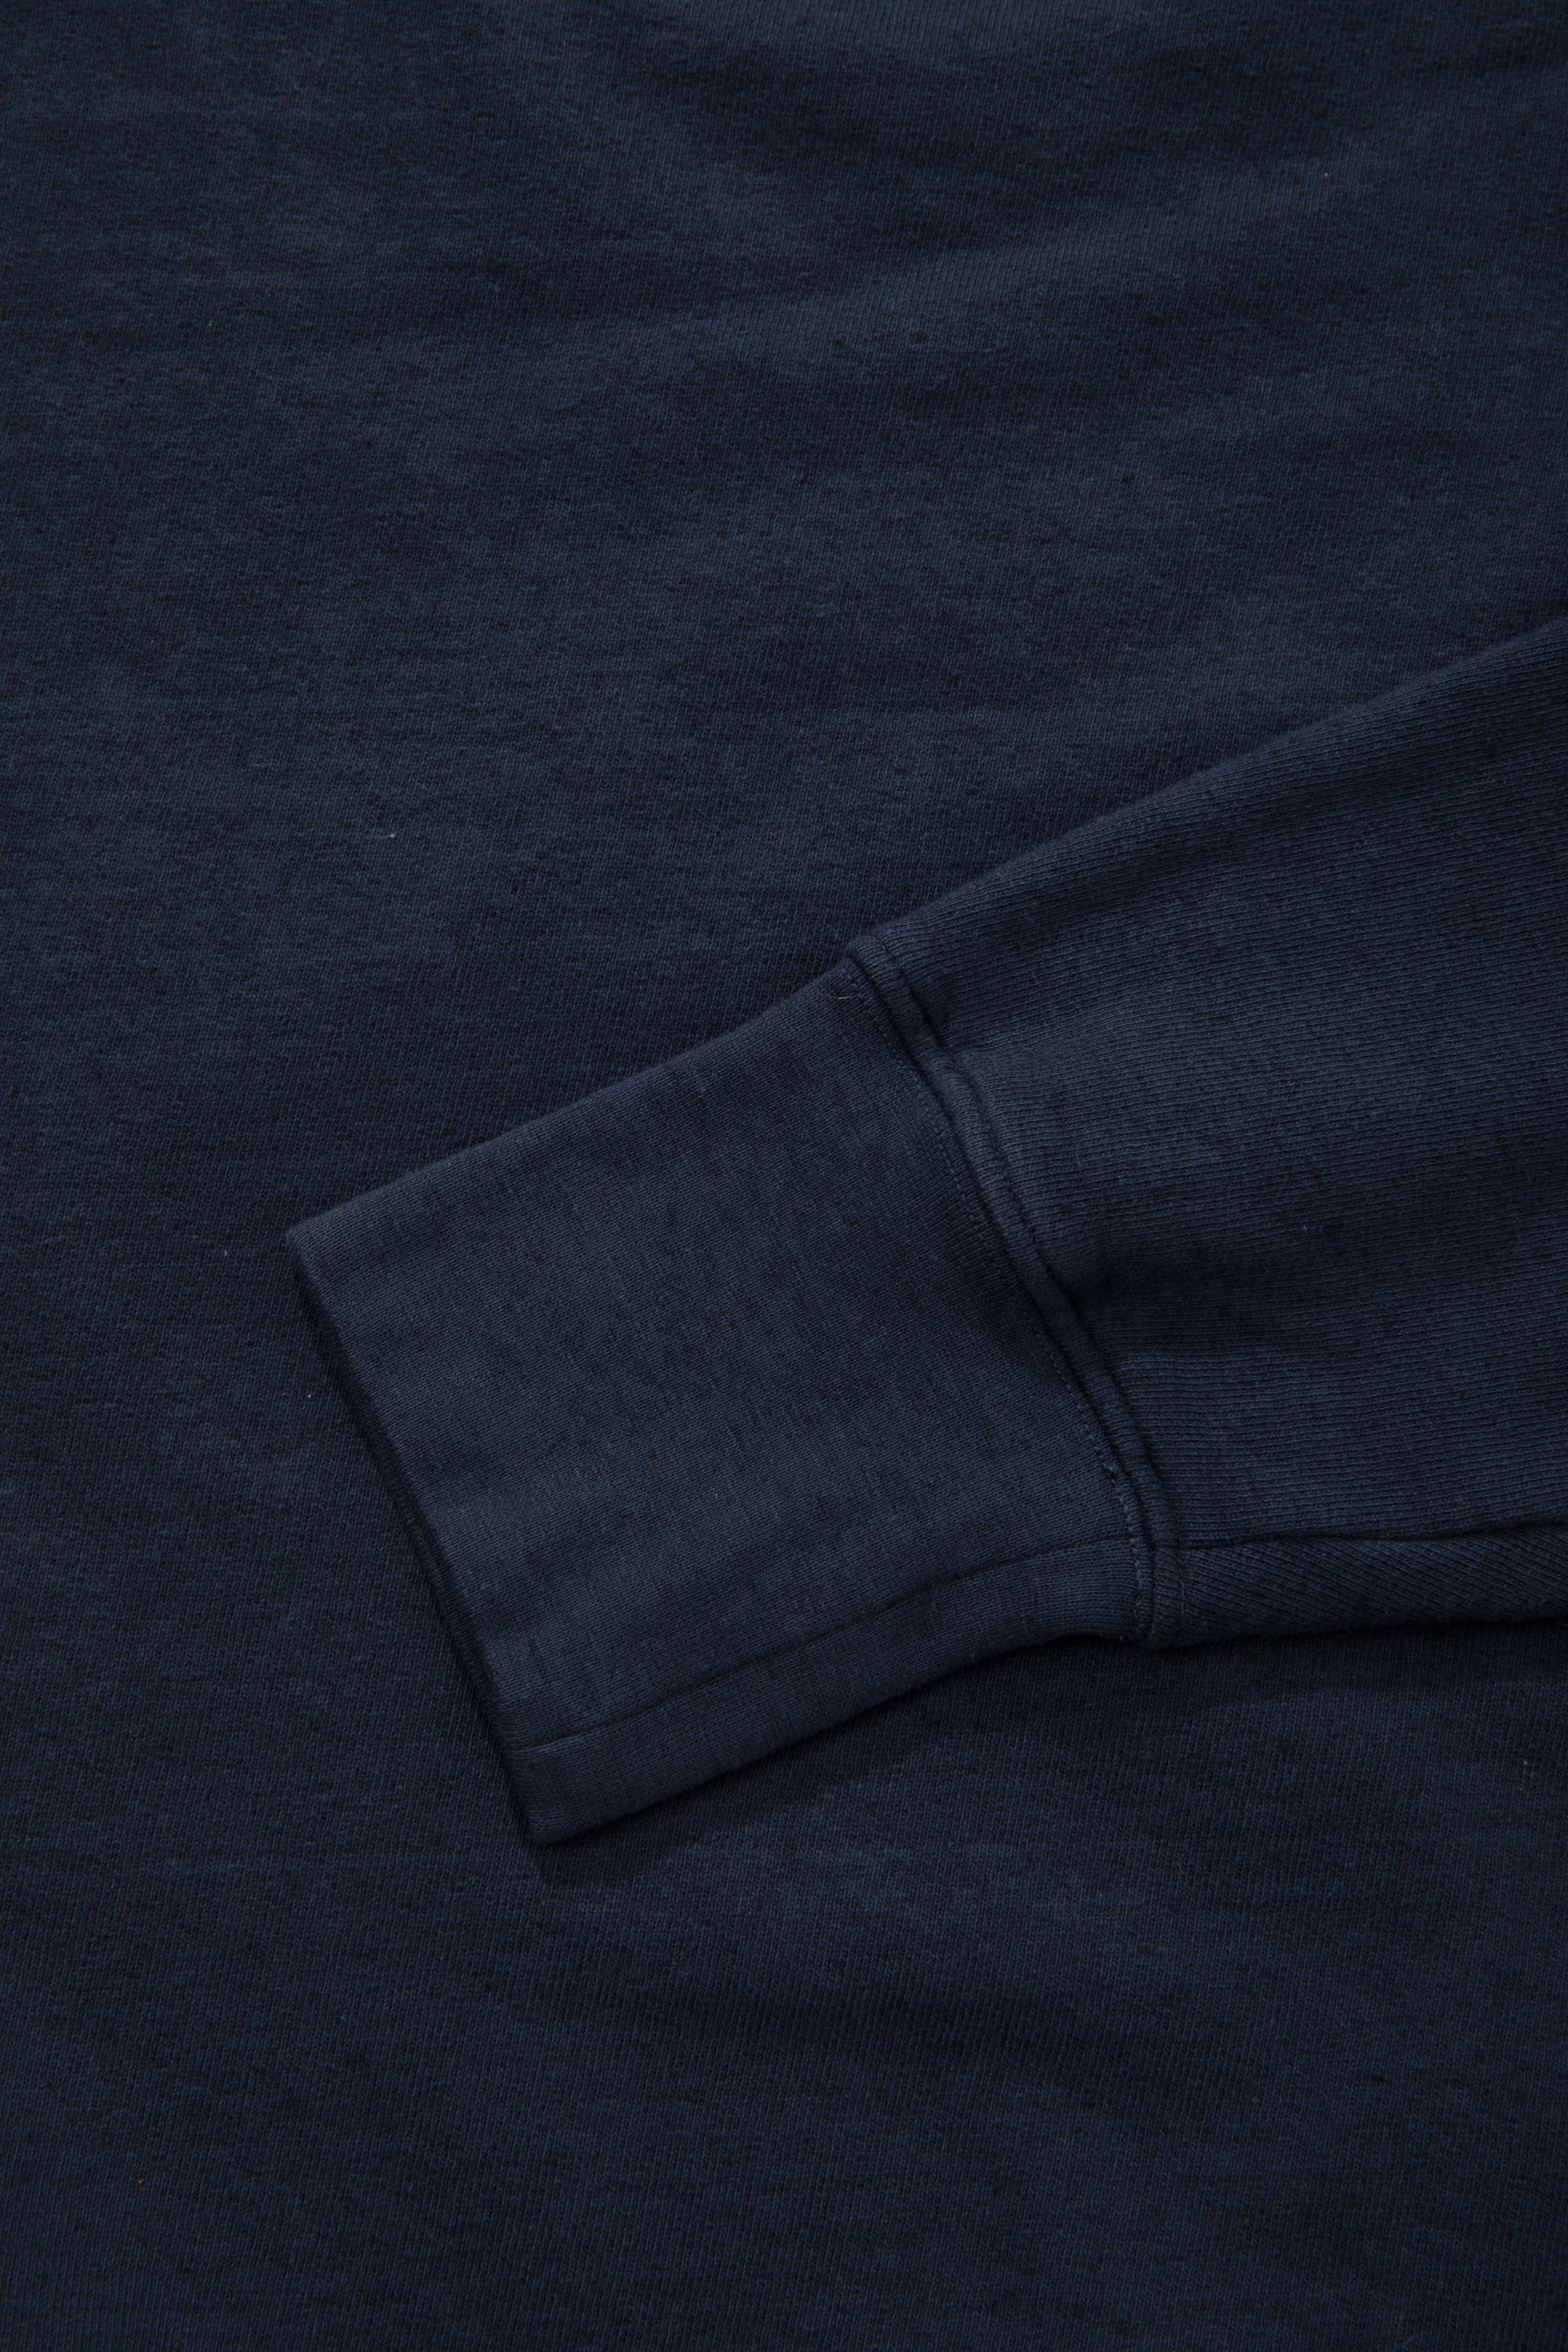 Men's French Terry Relaxed Sweatshirt Navy